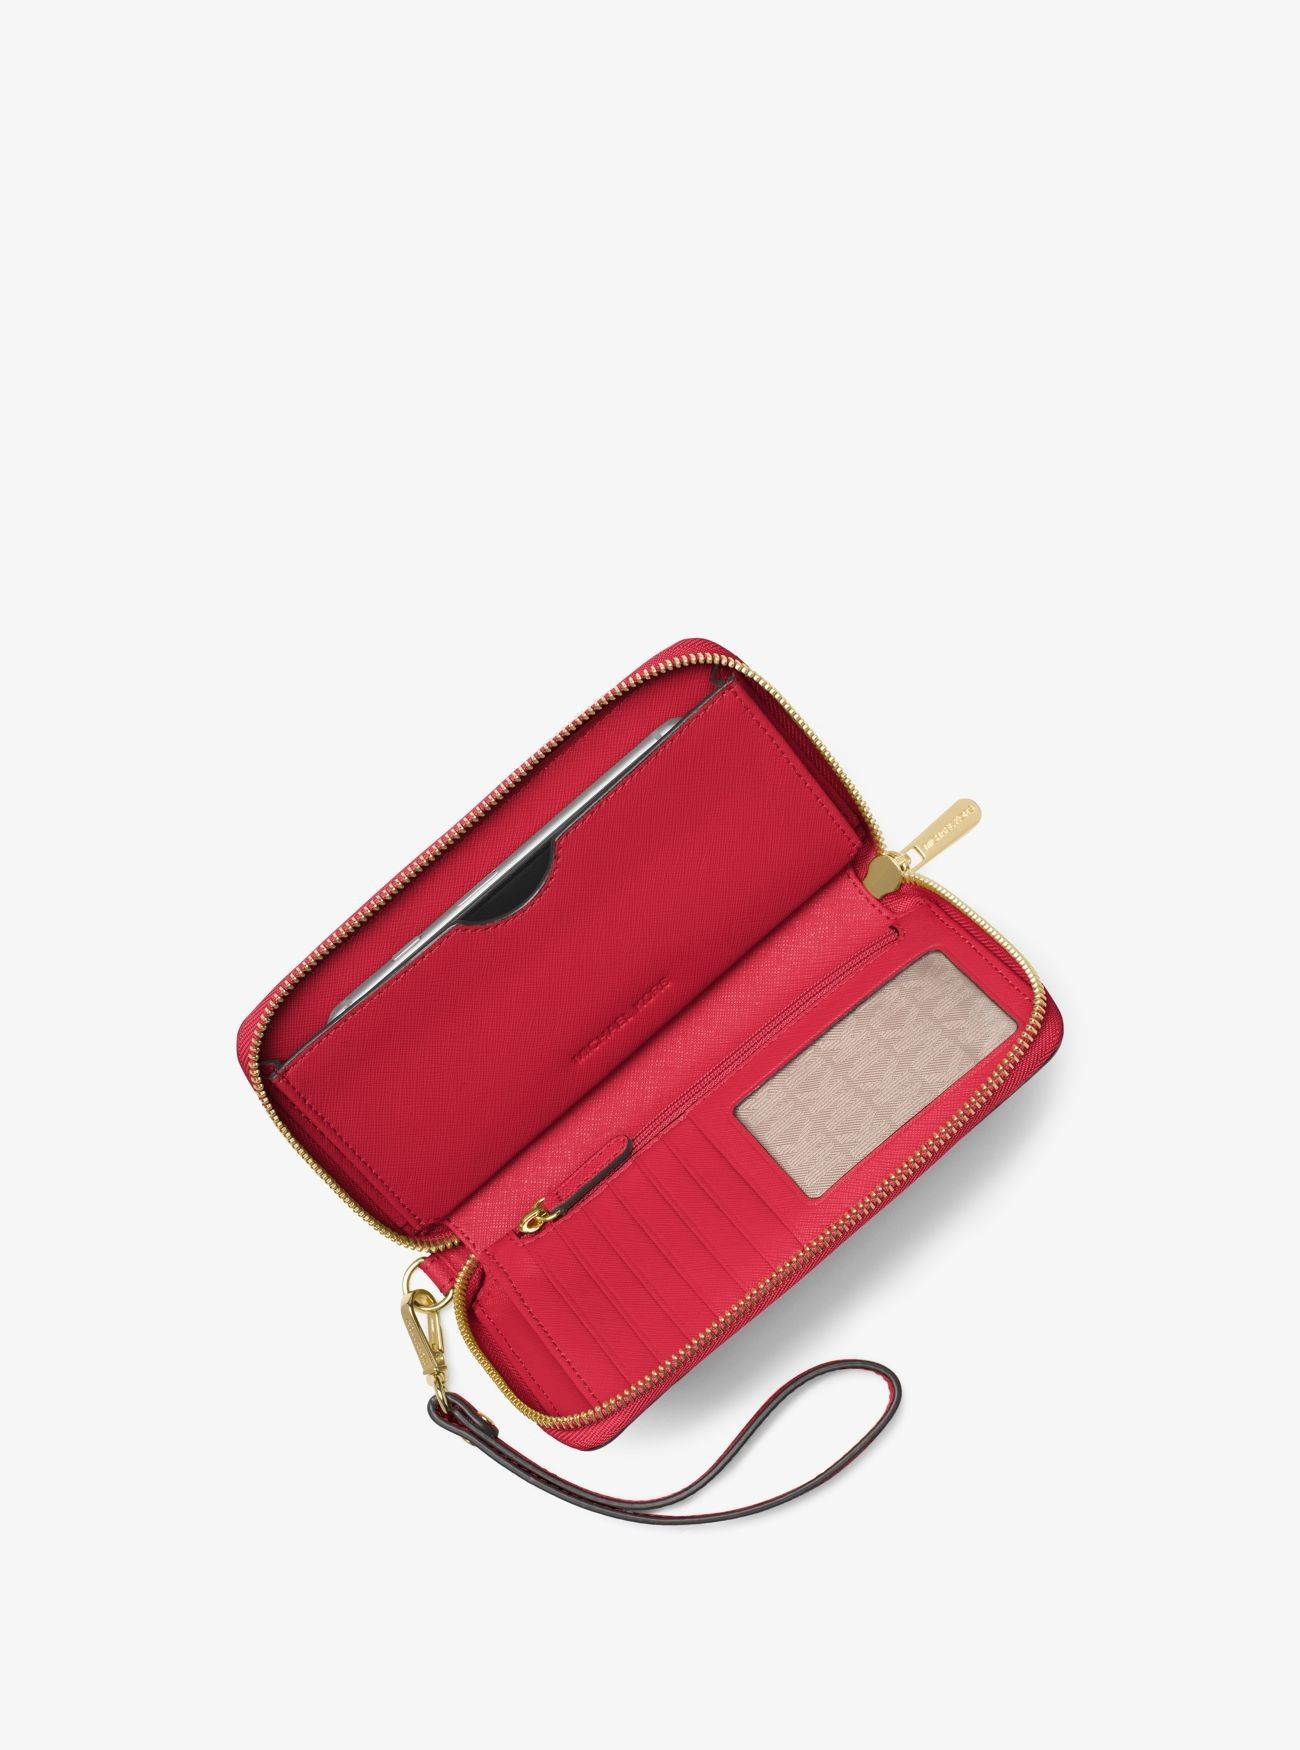 0c8d1ce8d917 Buy Michael Kors Bright Red Jet Set Travel Large Smartphone Wristlet  Discount